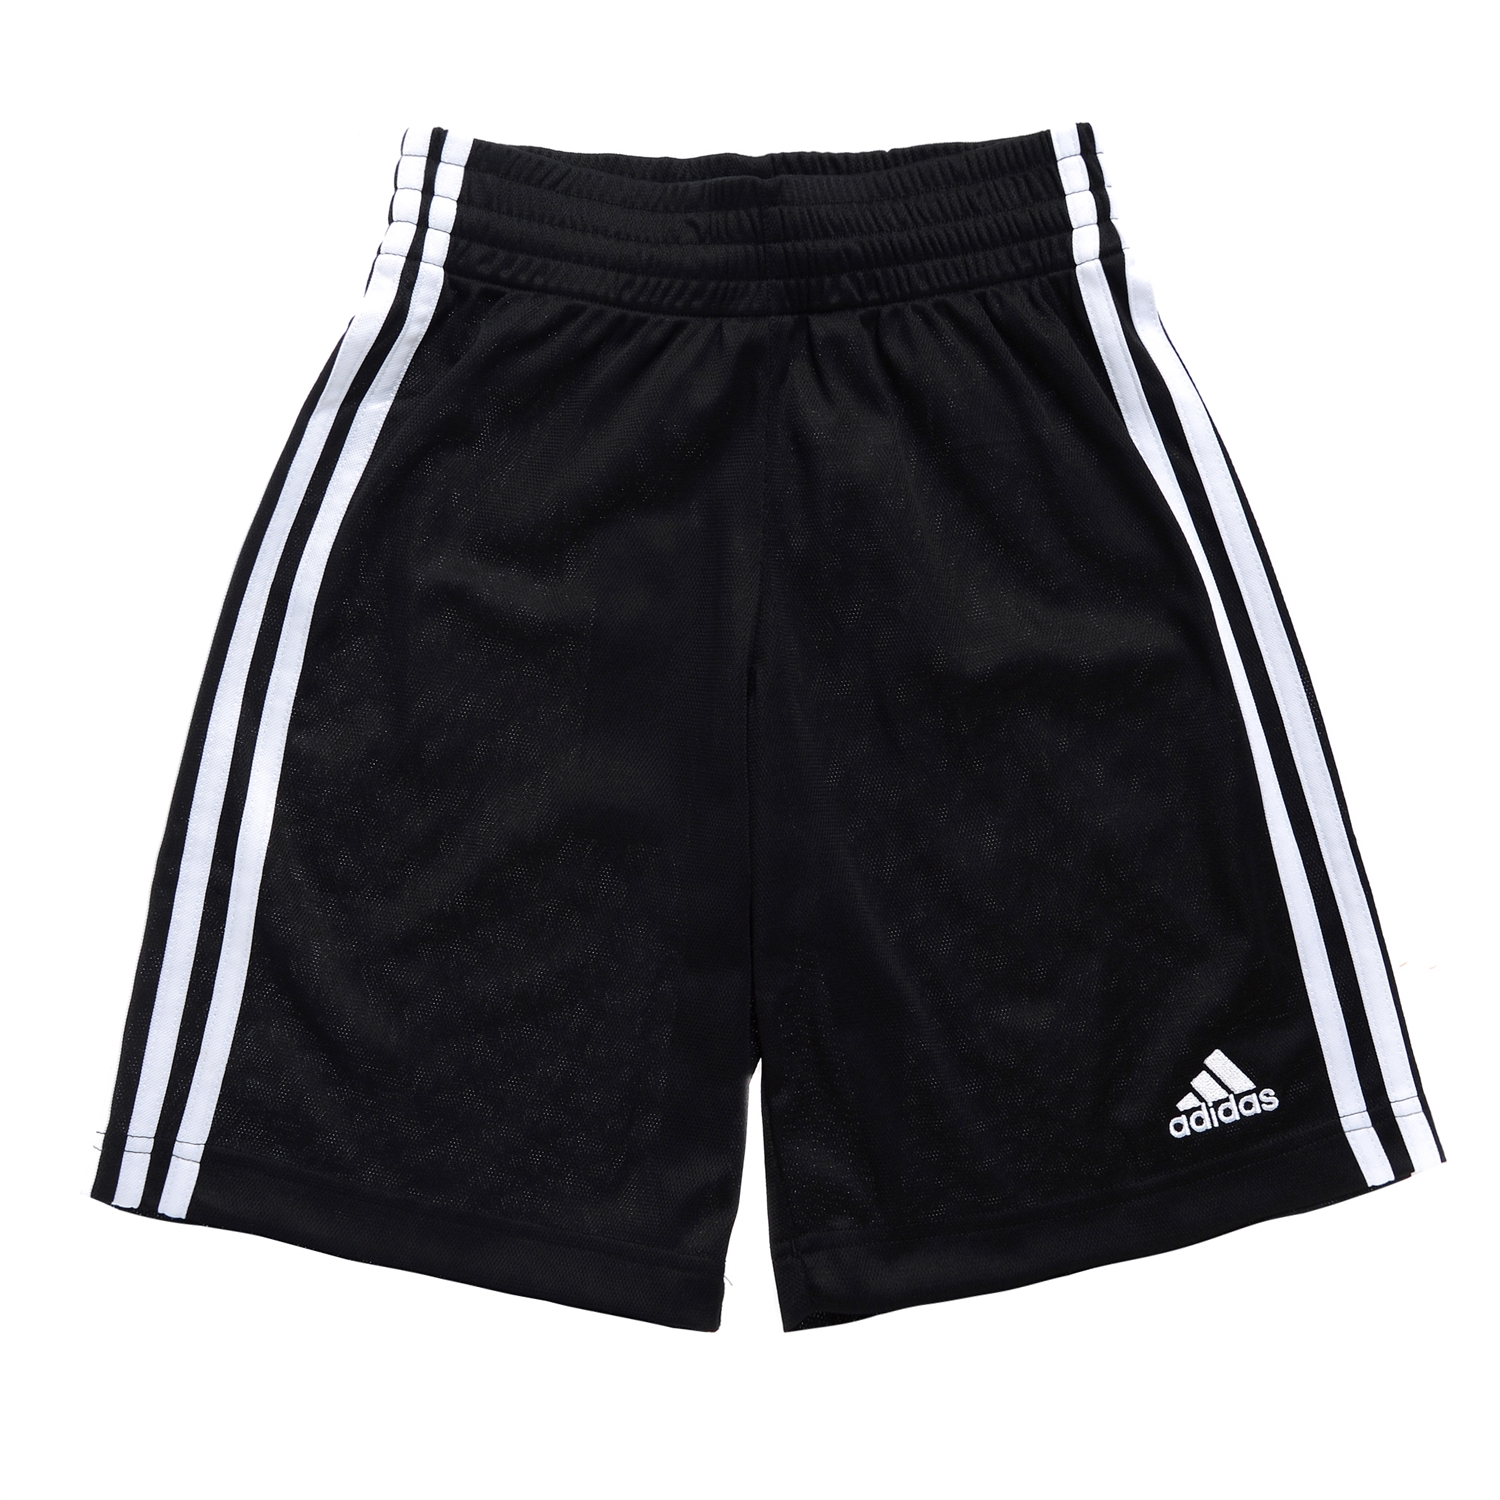 70fb3272c8 Boy's Adidas Shorts - Commander Basketball Shorts - Black ...